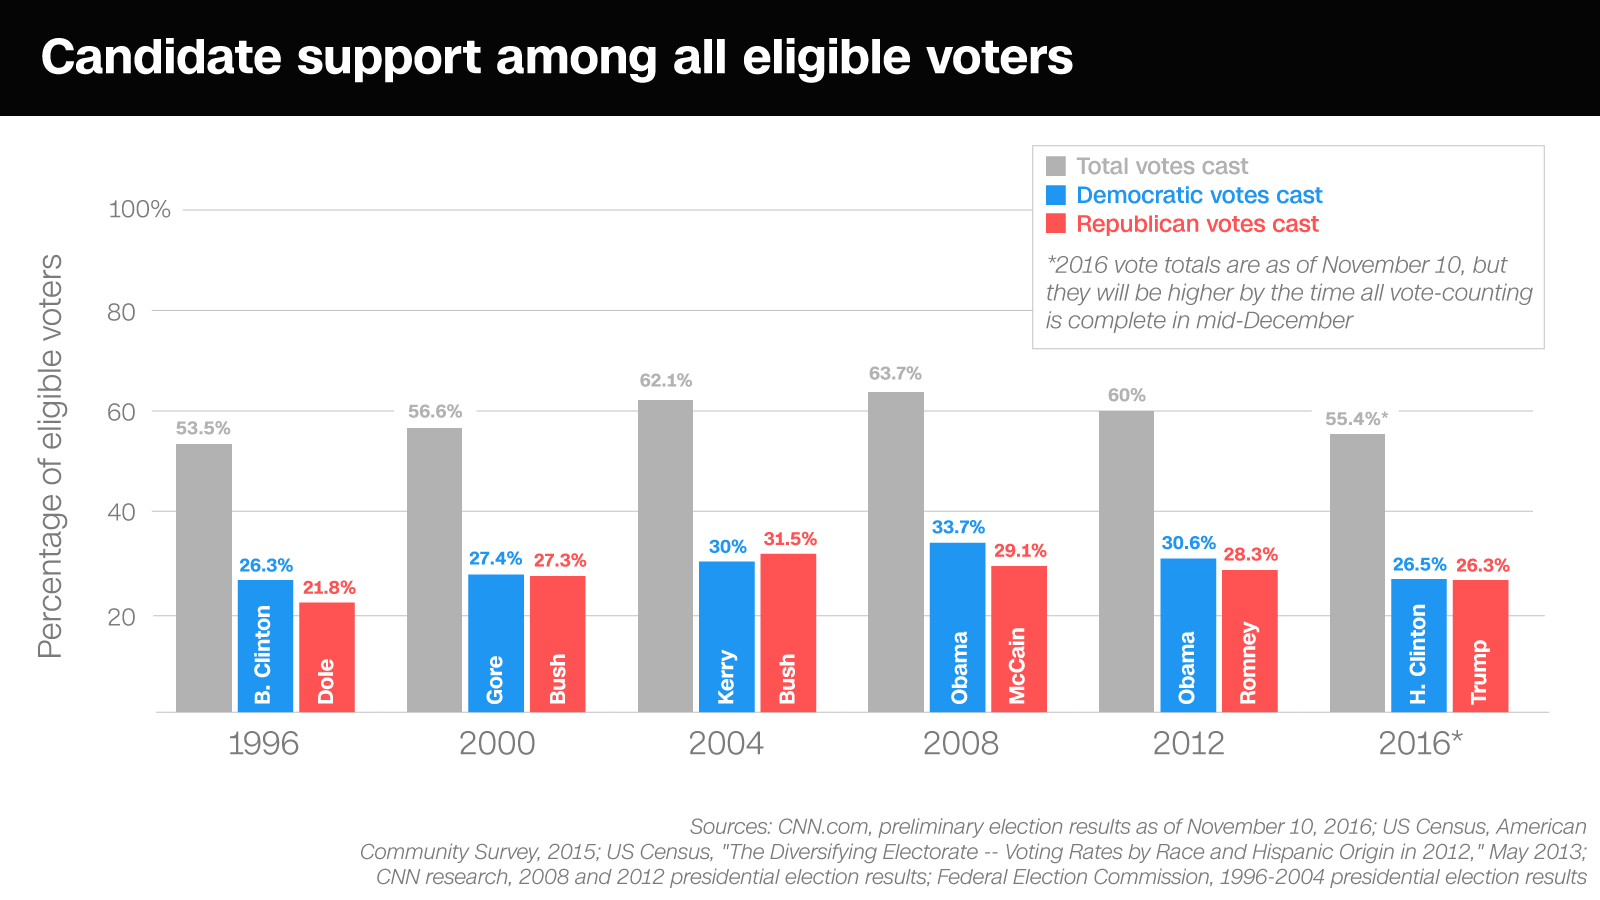 https://i1.wp.com/i.cdn.turner.com/cnn/.e/interactive/html5-video-media/2016/11/10/turnout_full_scale_all_voters_v2update.png